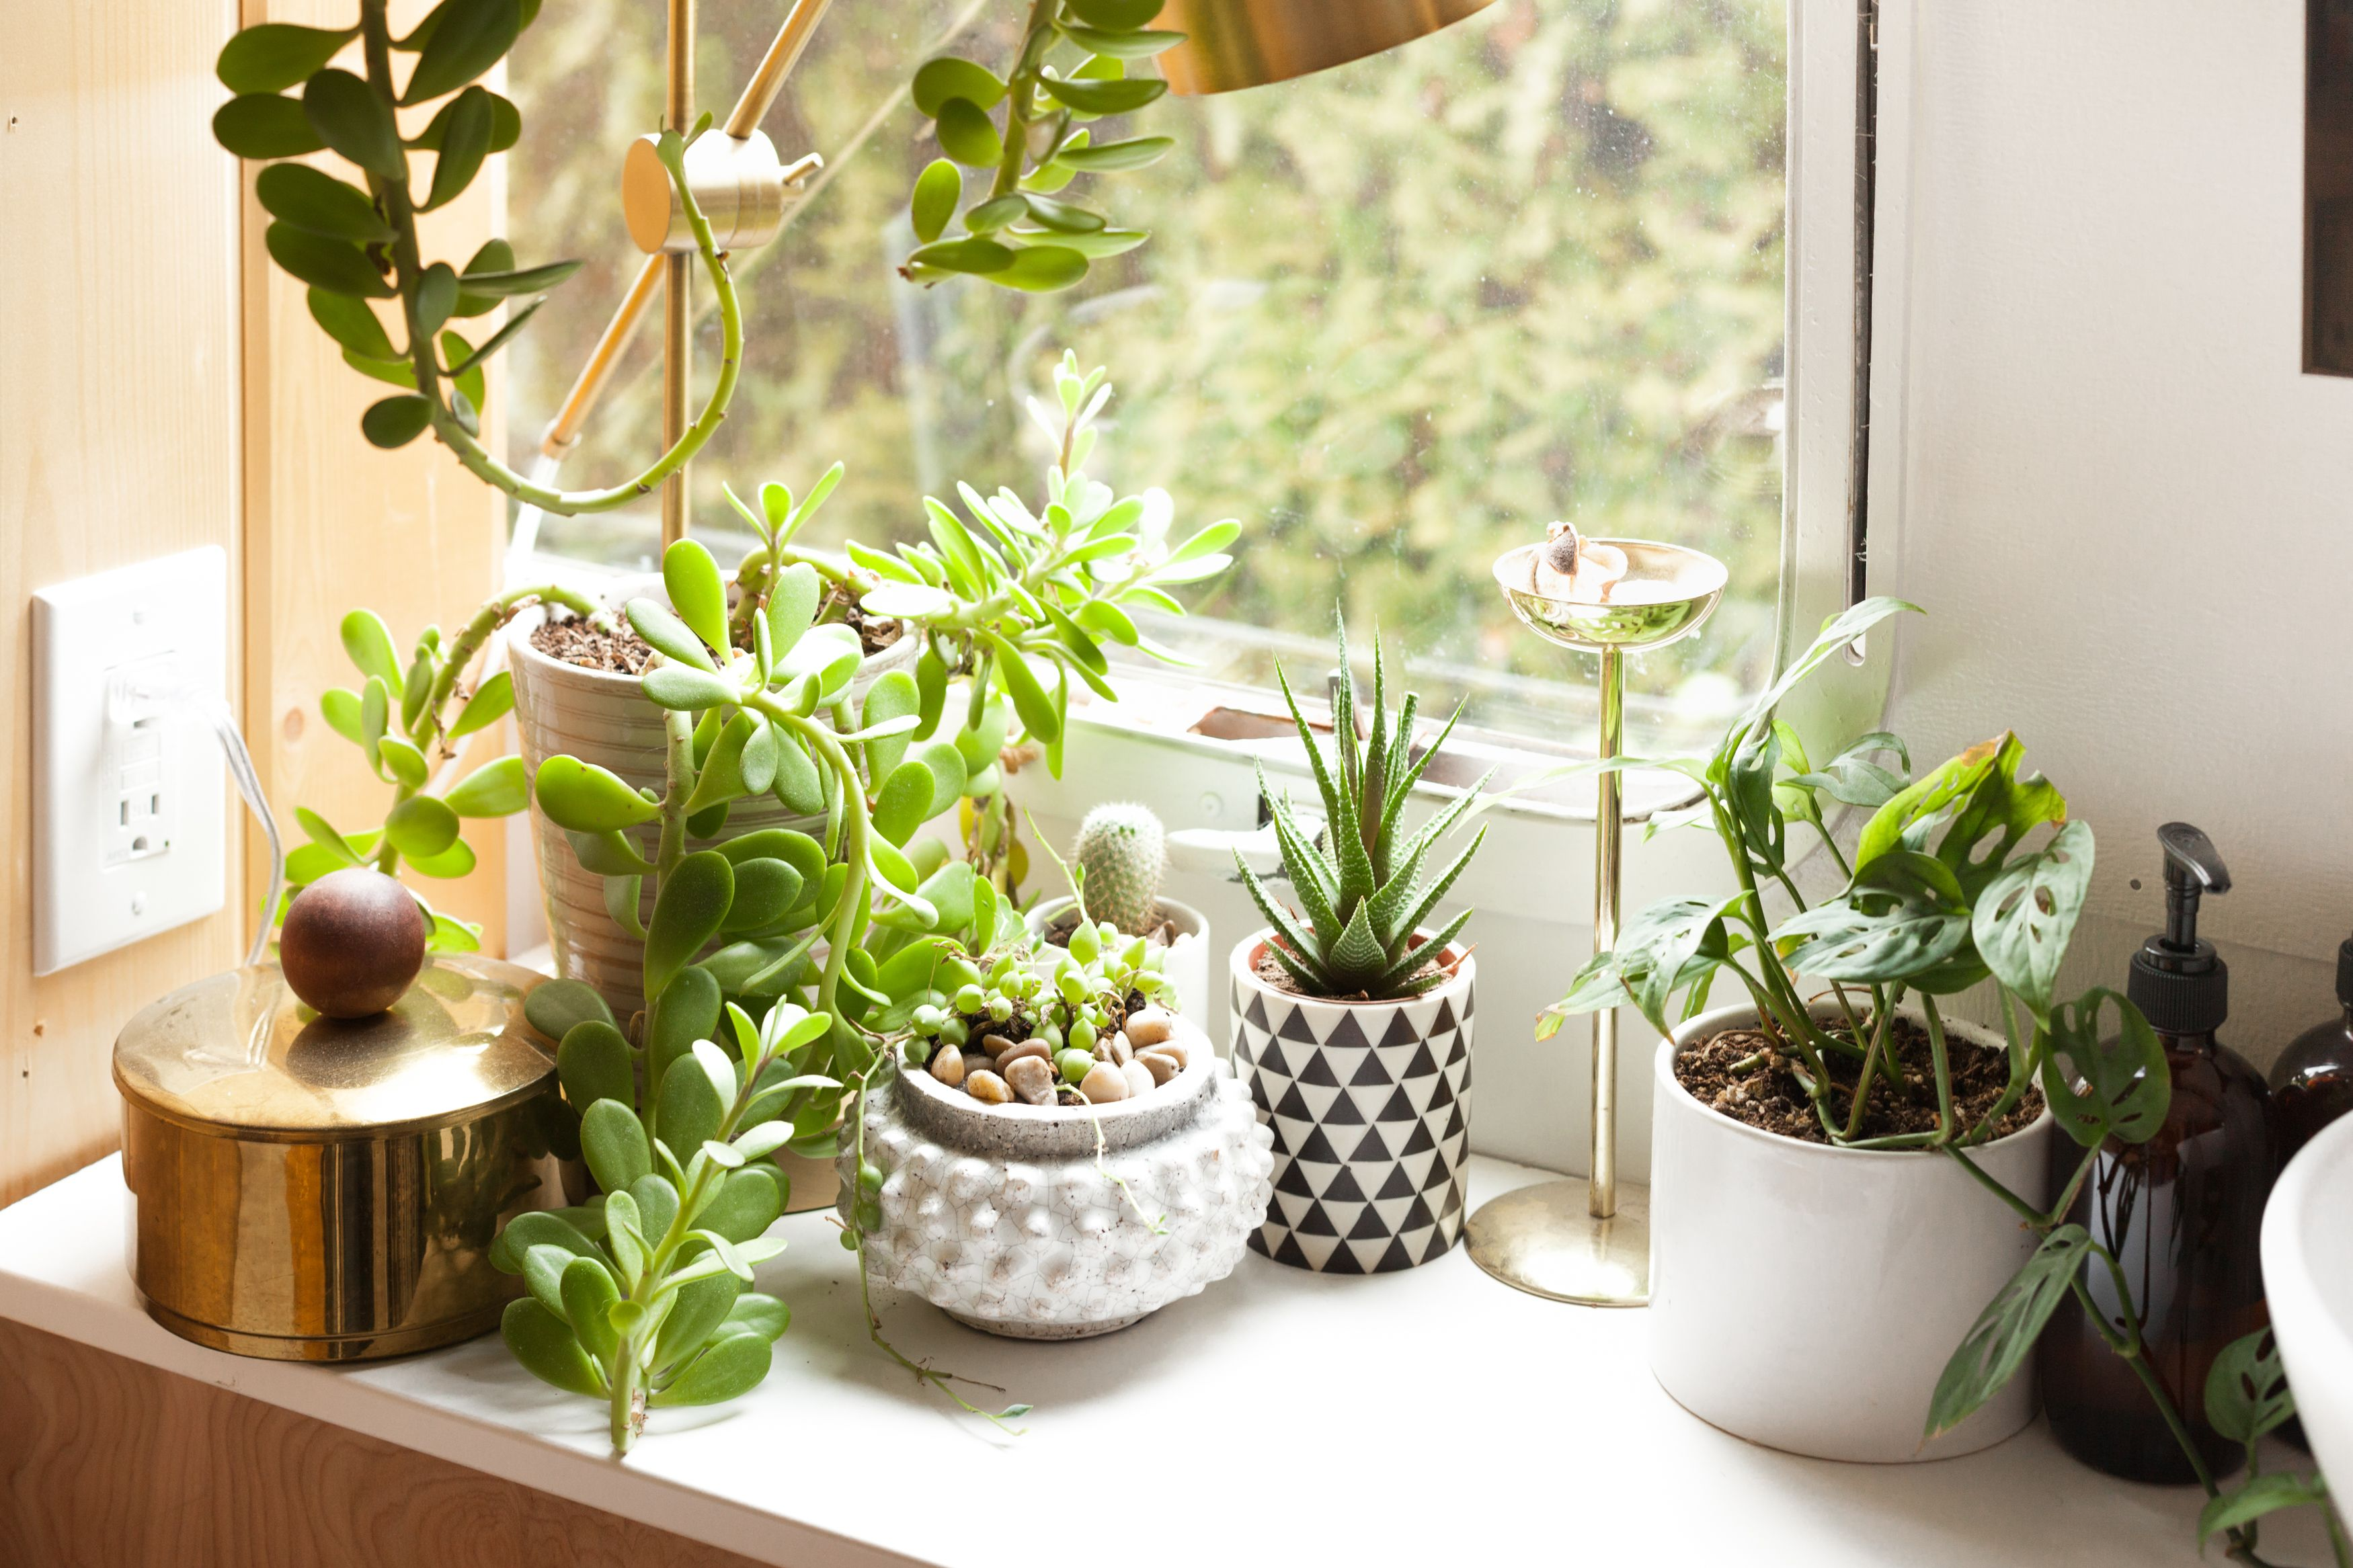 Where To Buy Indoor Plants Online 7 Great Budget Sources For Buying Plants Online Gardens Bring